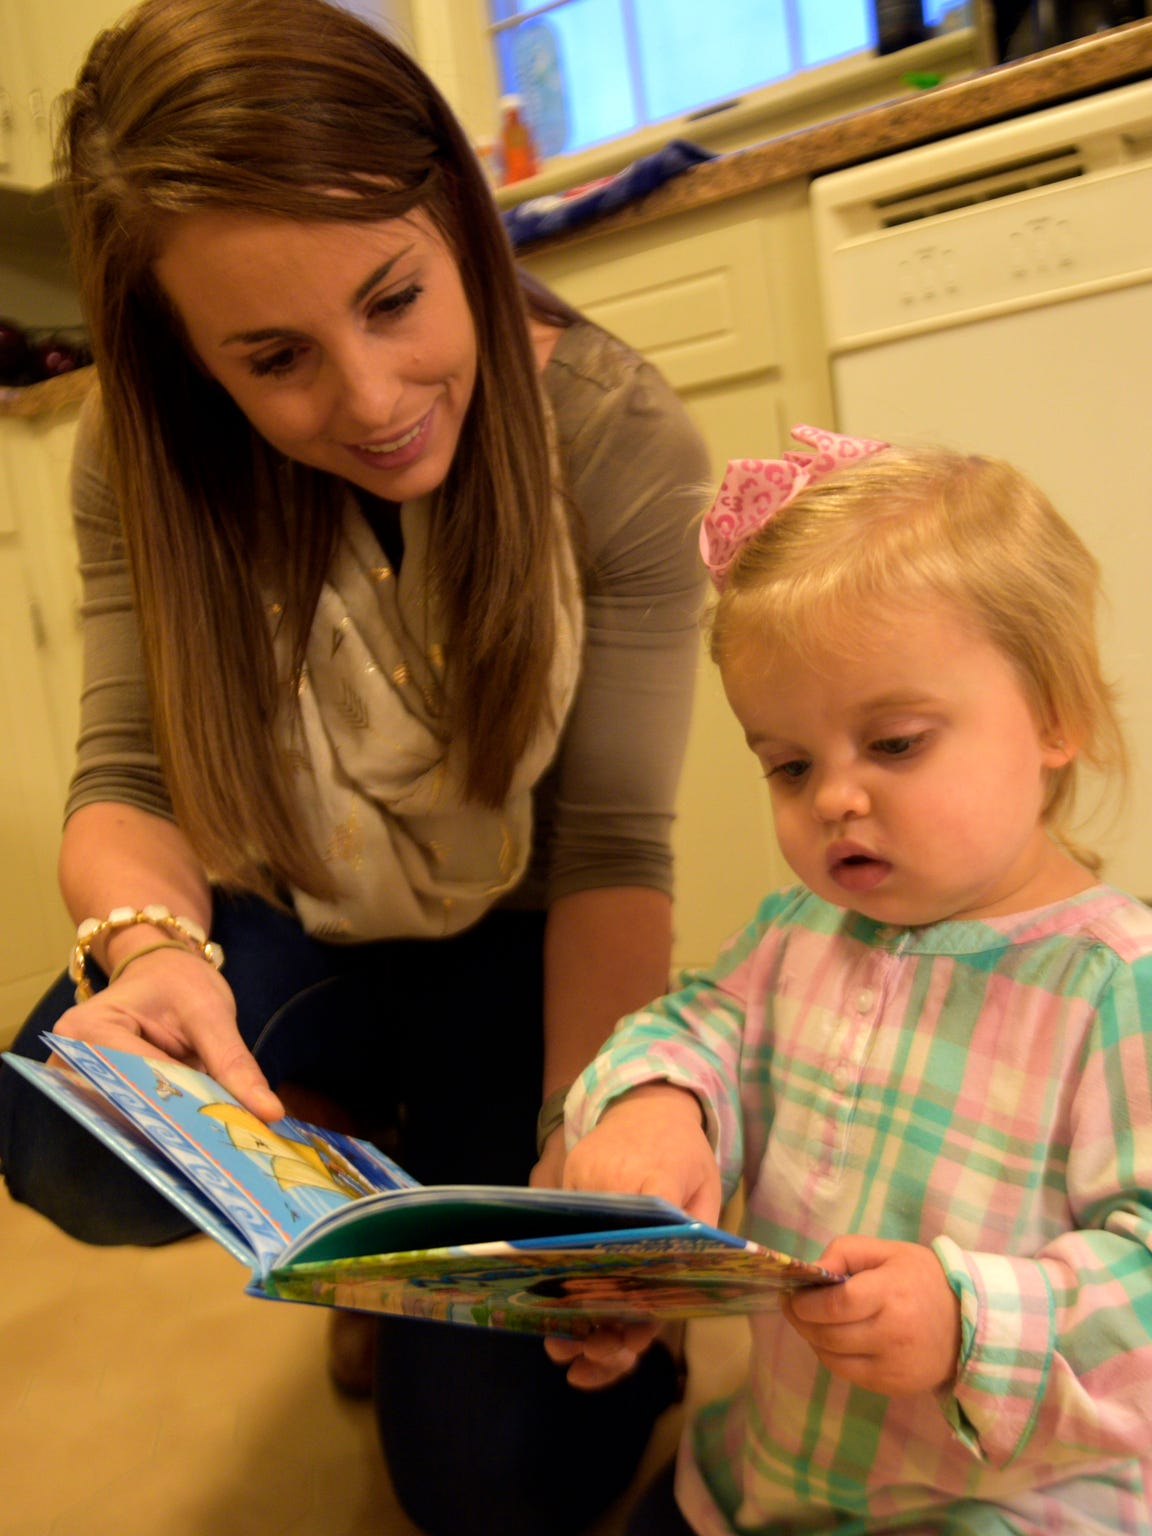 Maddy Keiper, 32, reads a book to her daughter, Kenleigh, 1, the afternoon of Monday, Dec. 18 in their Chambersburg home.